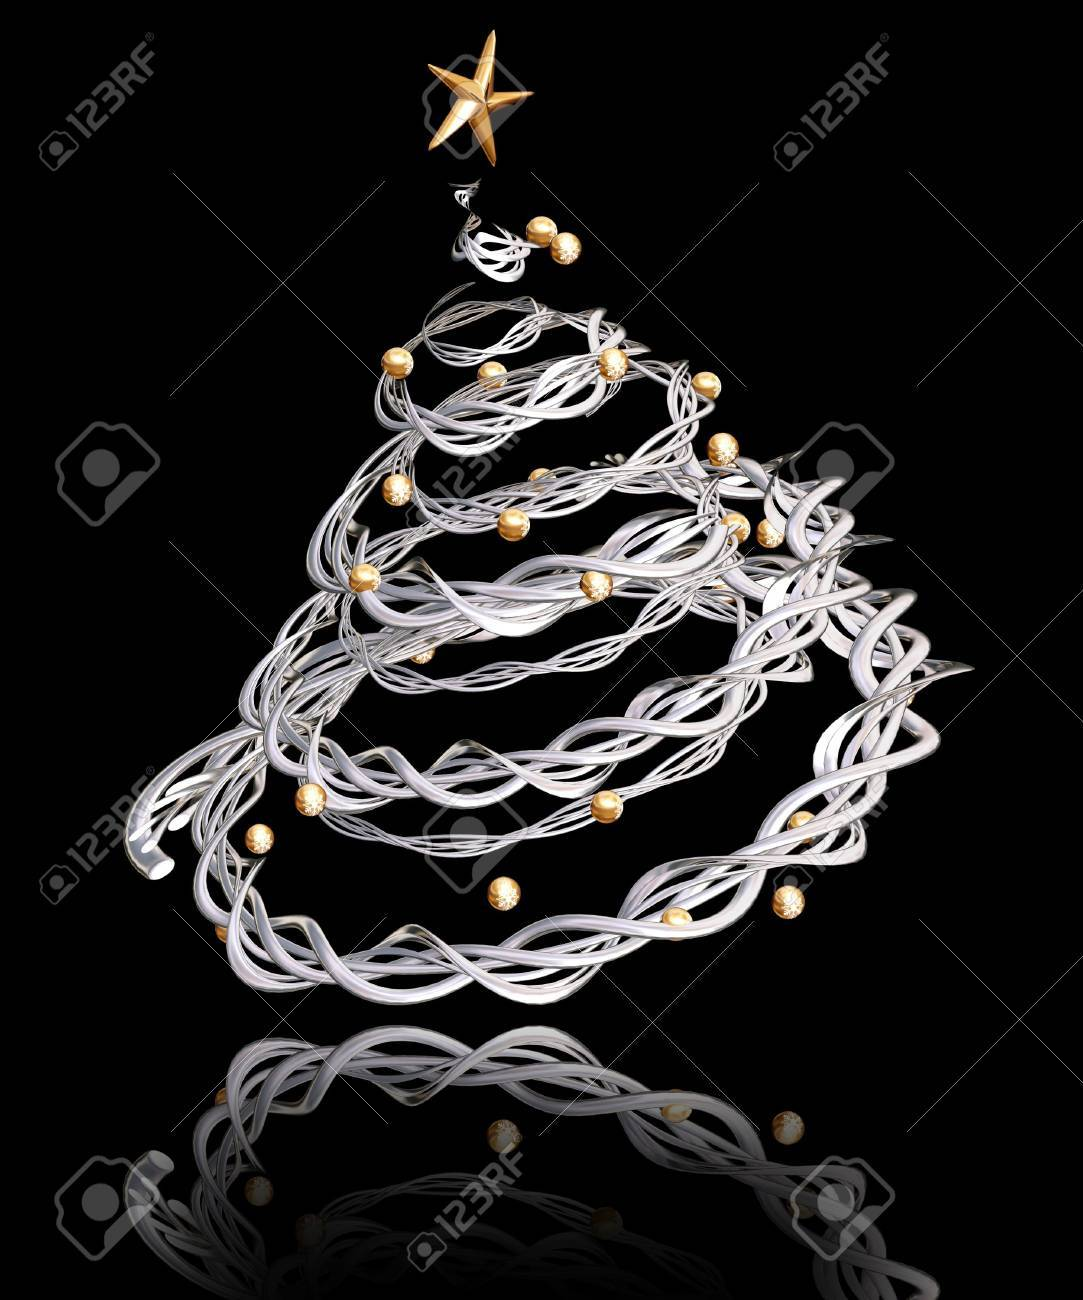 3D render of a twisted metal Christmas tree Stock Photo - 511998